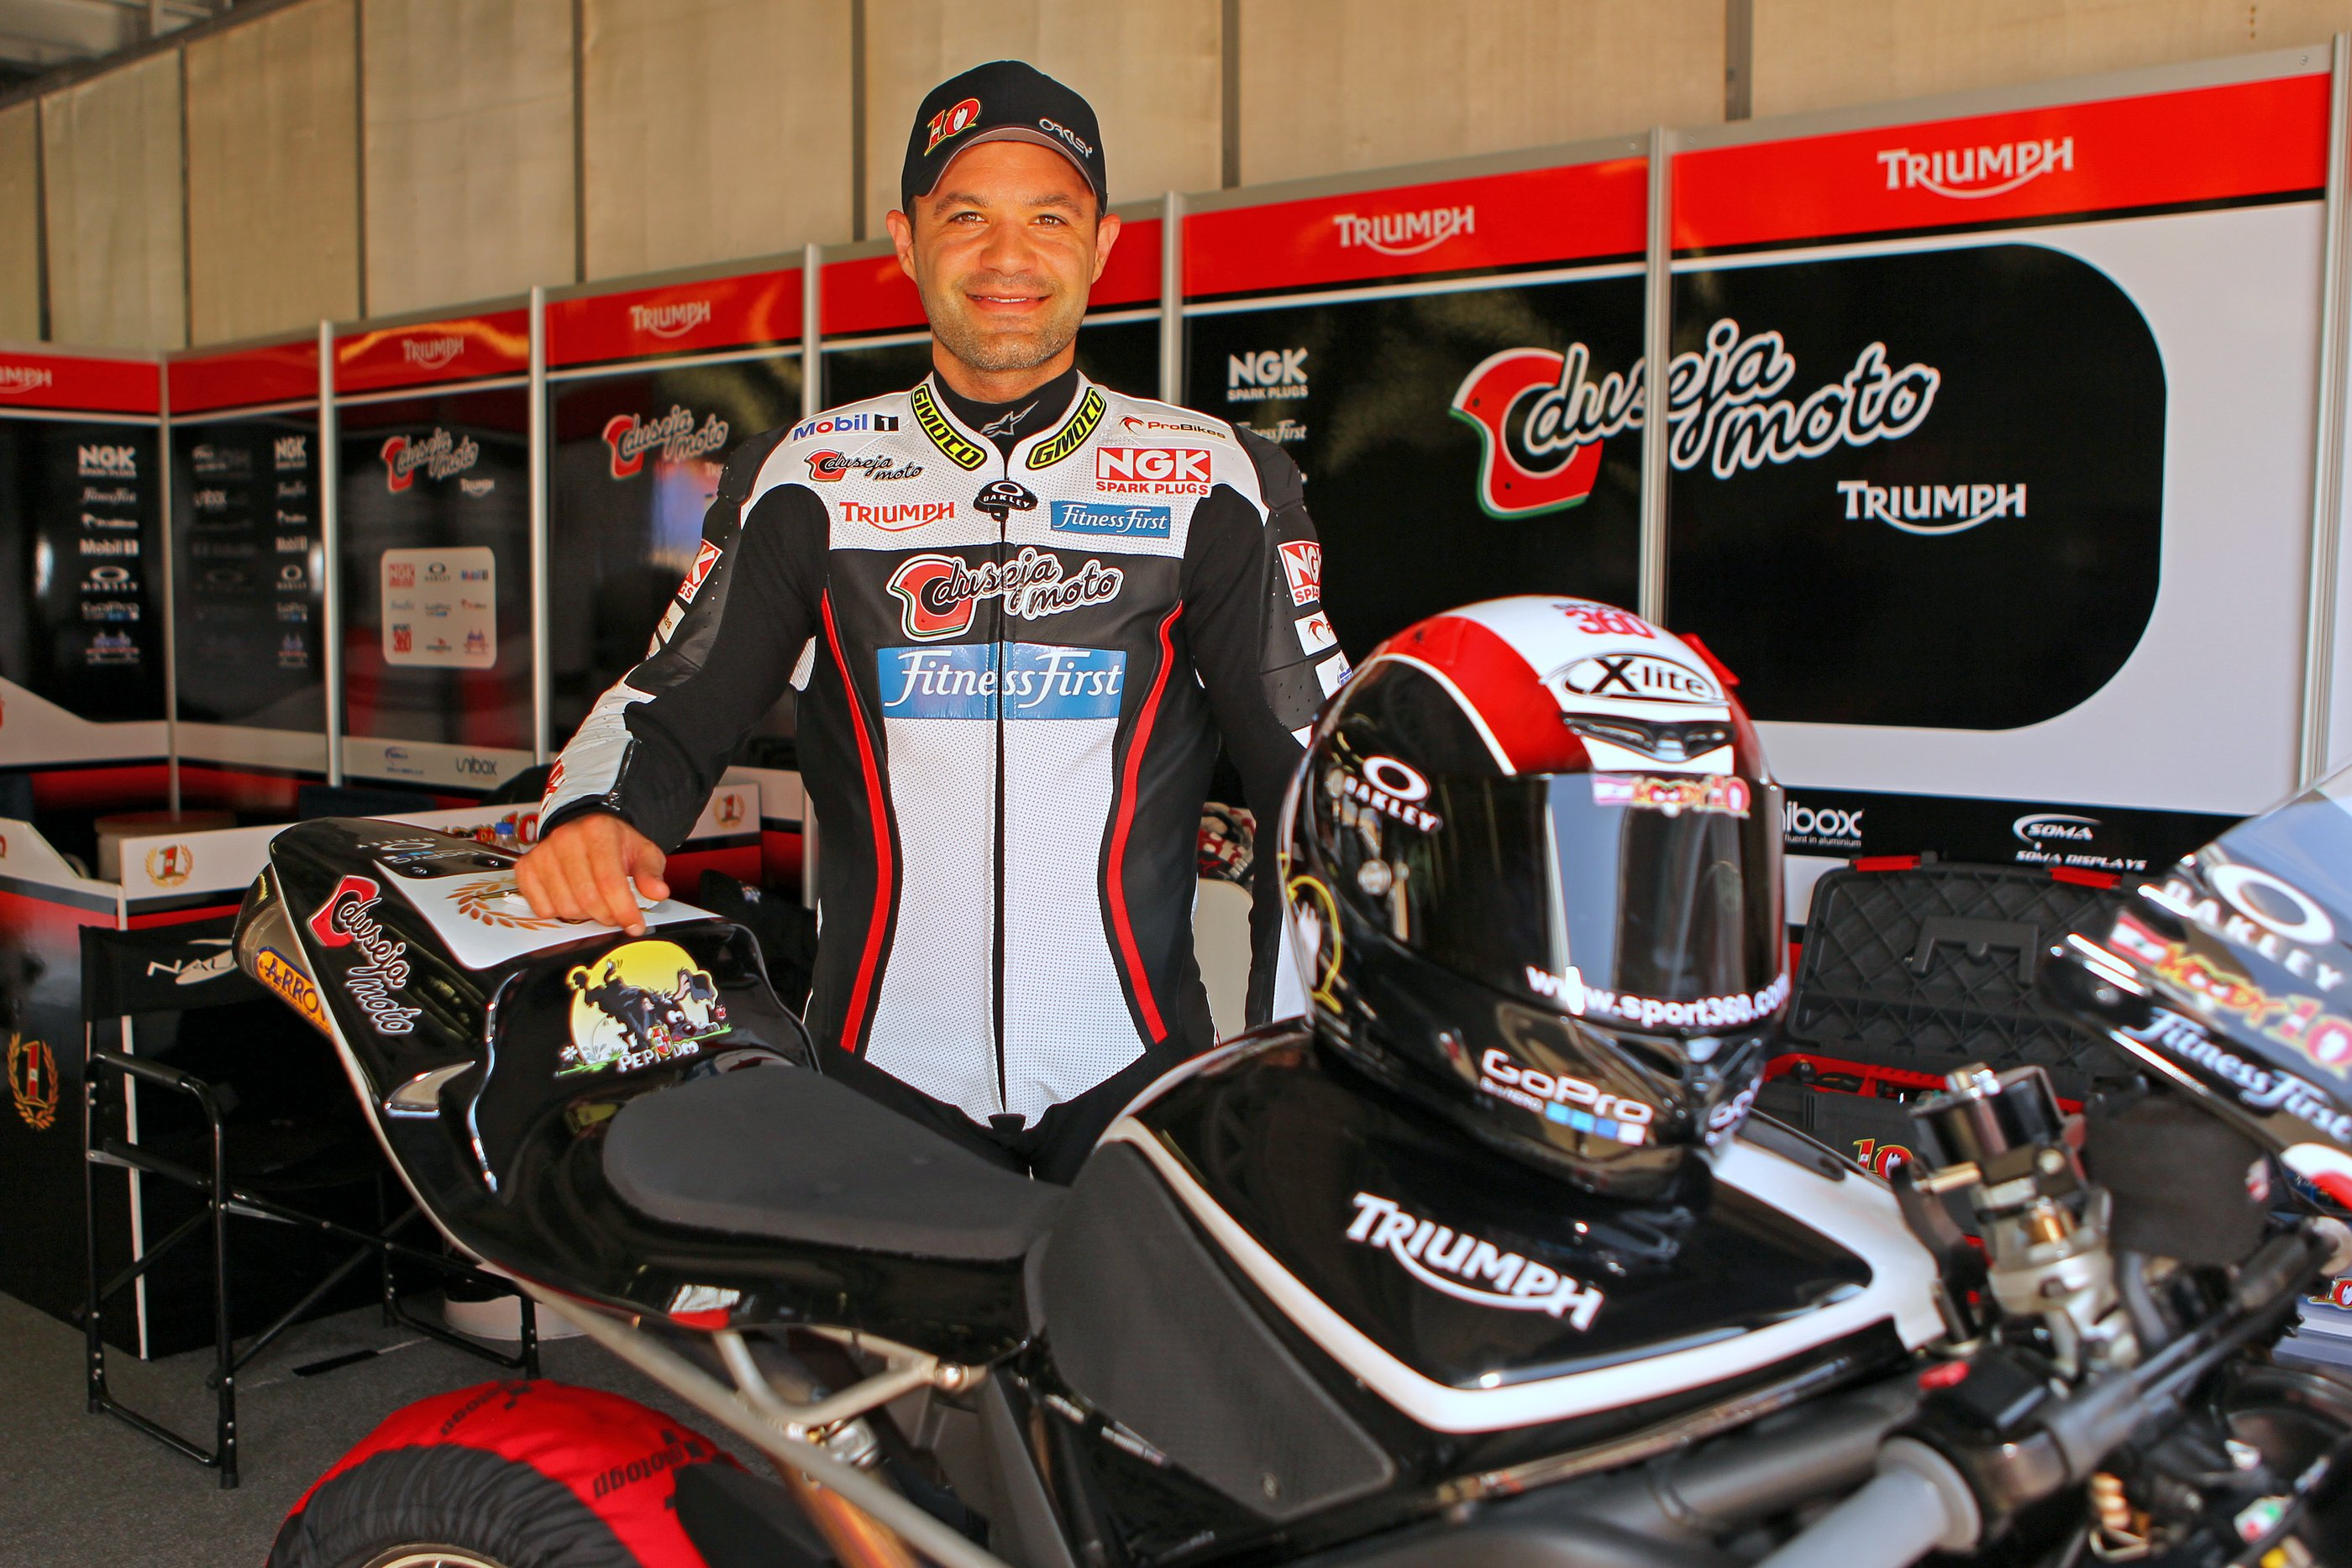 DAMC National Sportsbike Championship: The Boys Are Back in Town